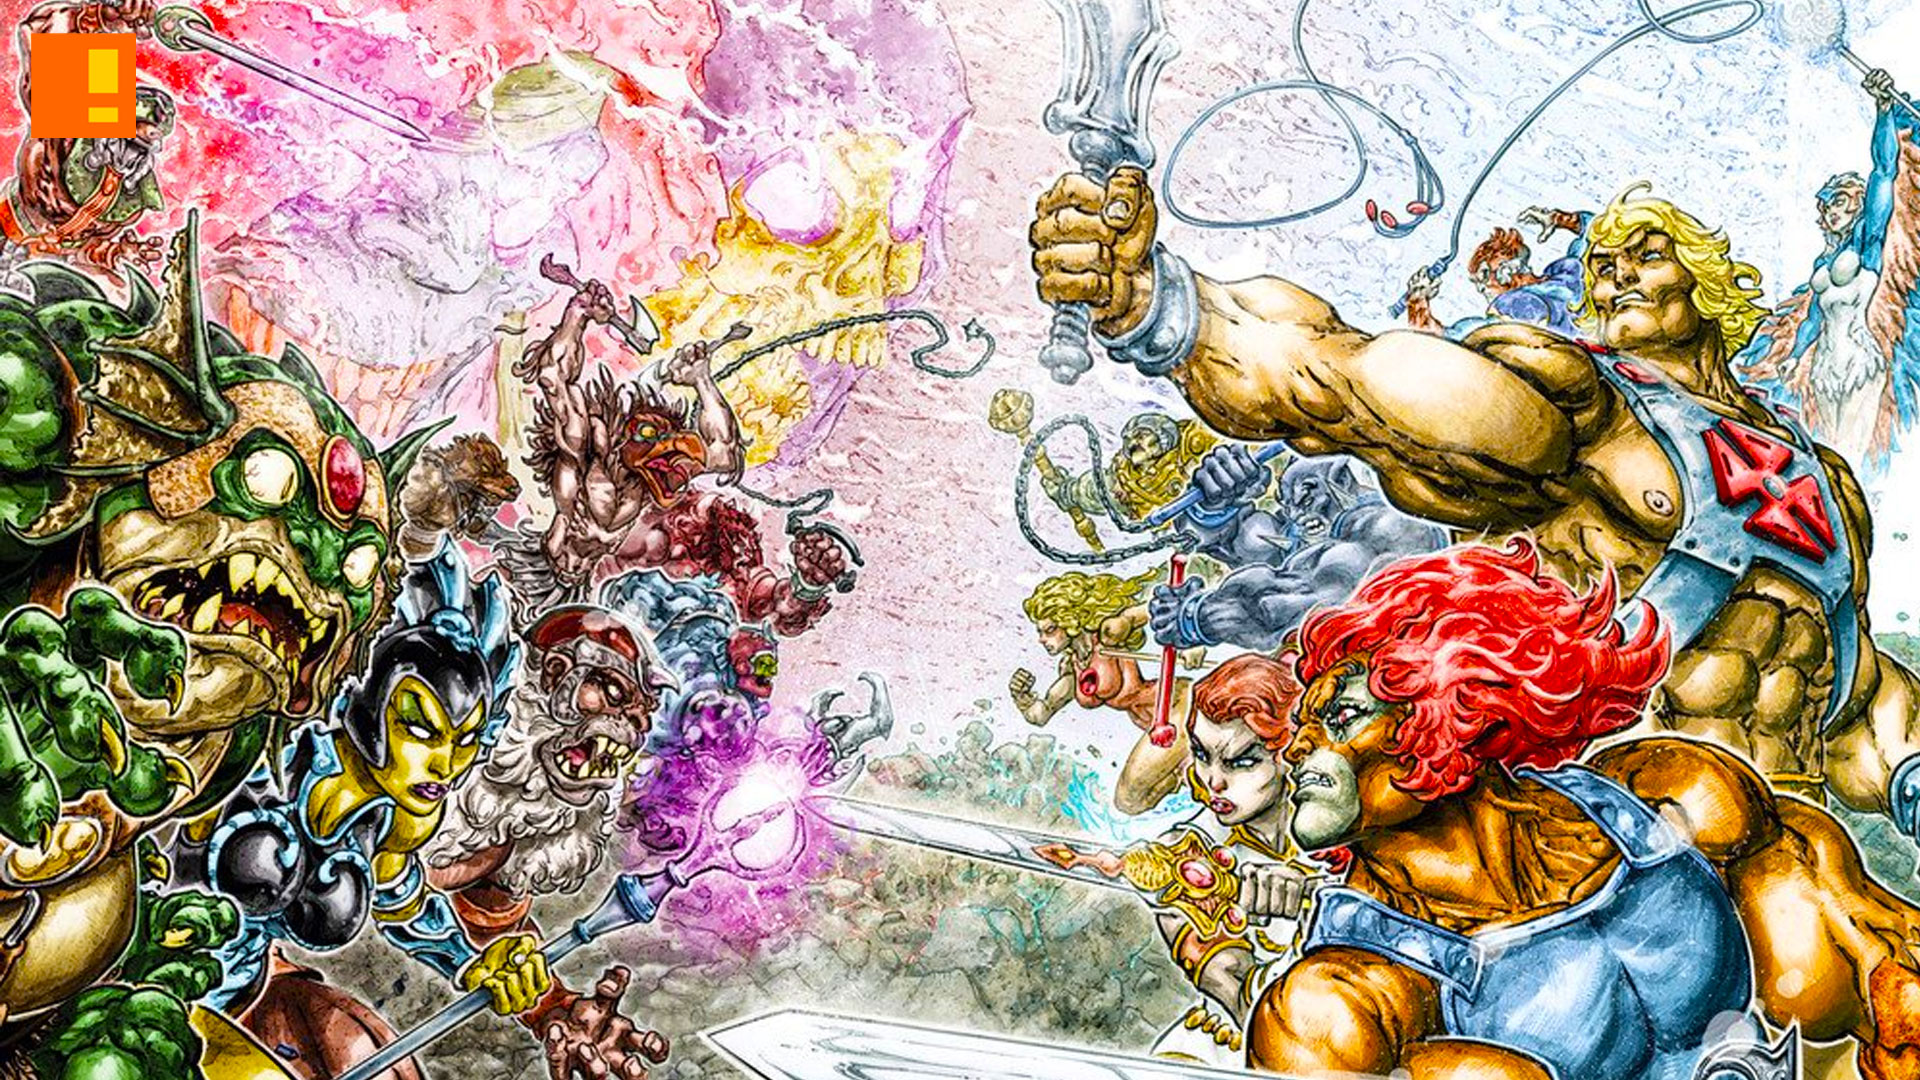 he-man, thundercats, dc comics, crossover, comic series, MATTEL, the action pixel, entertainment on tap